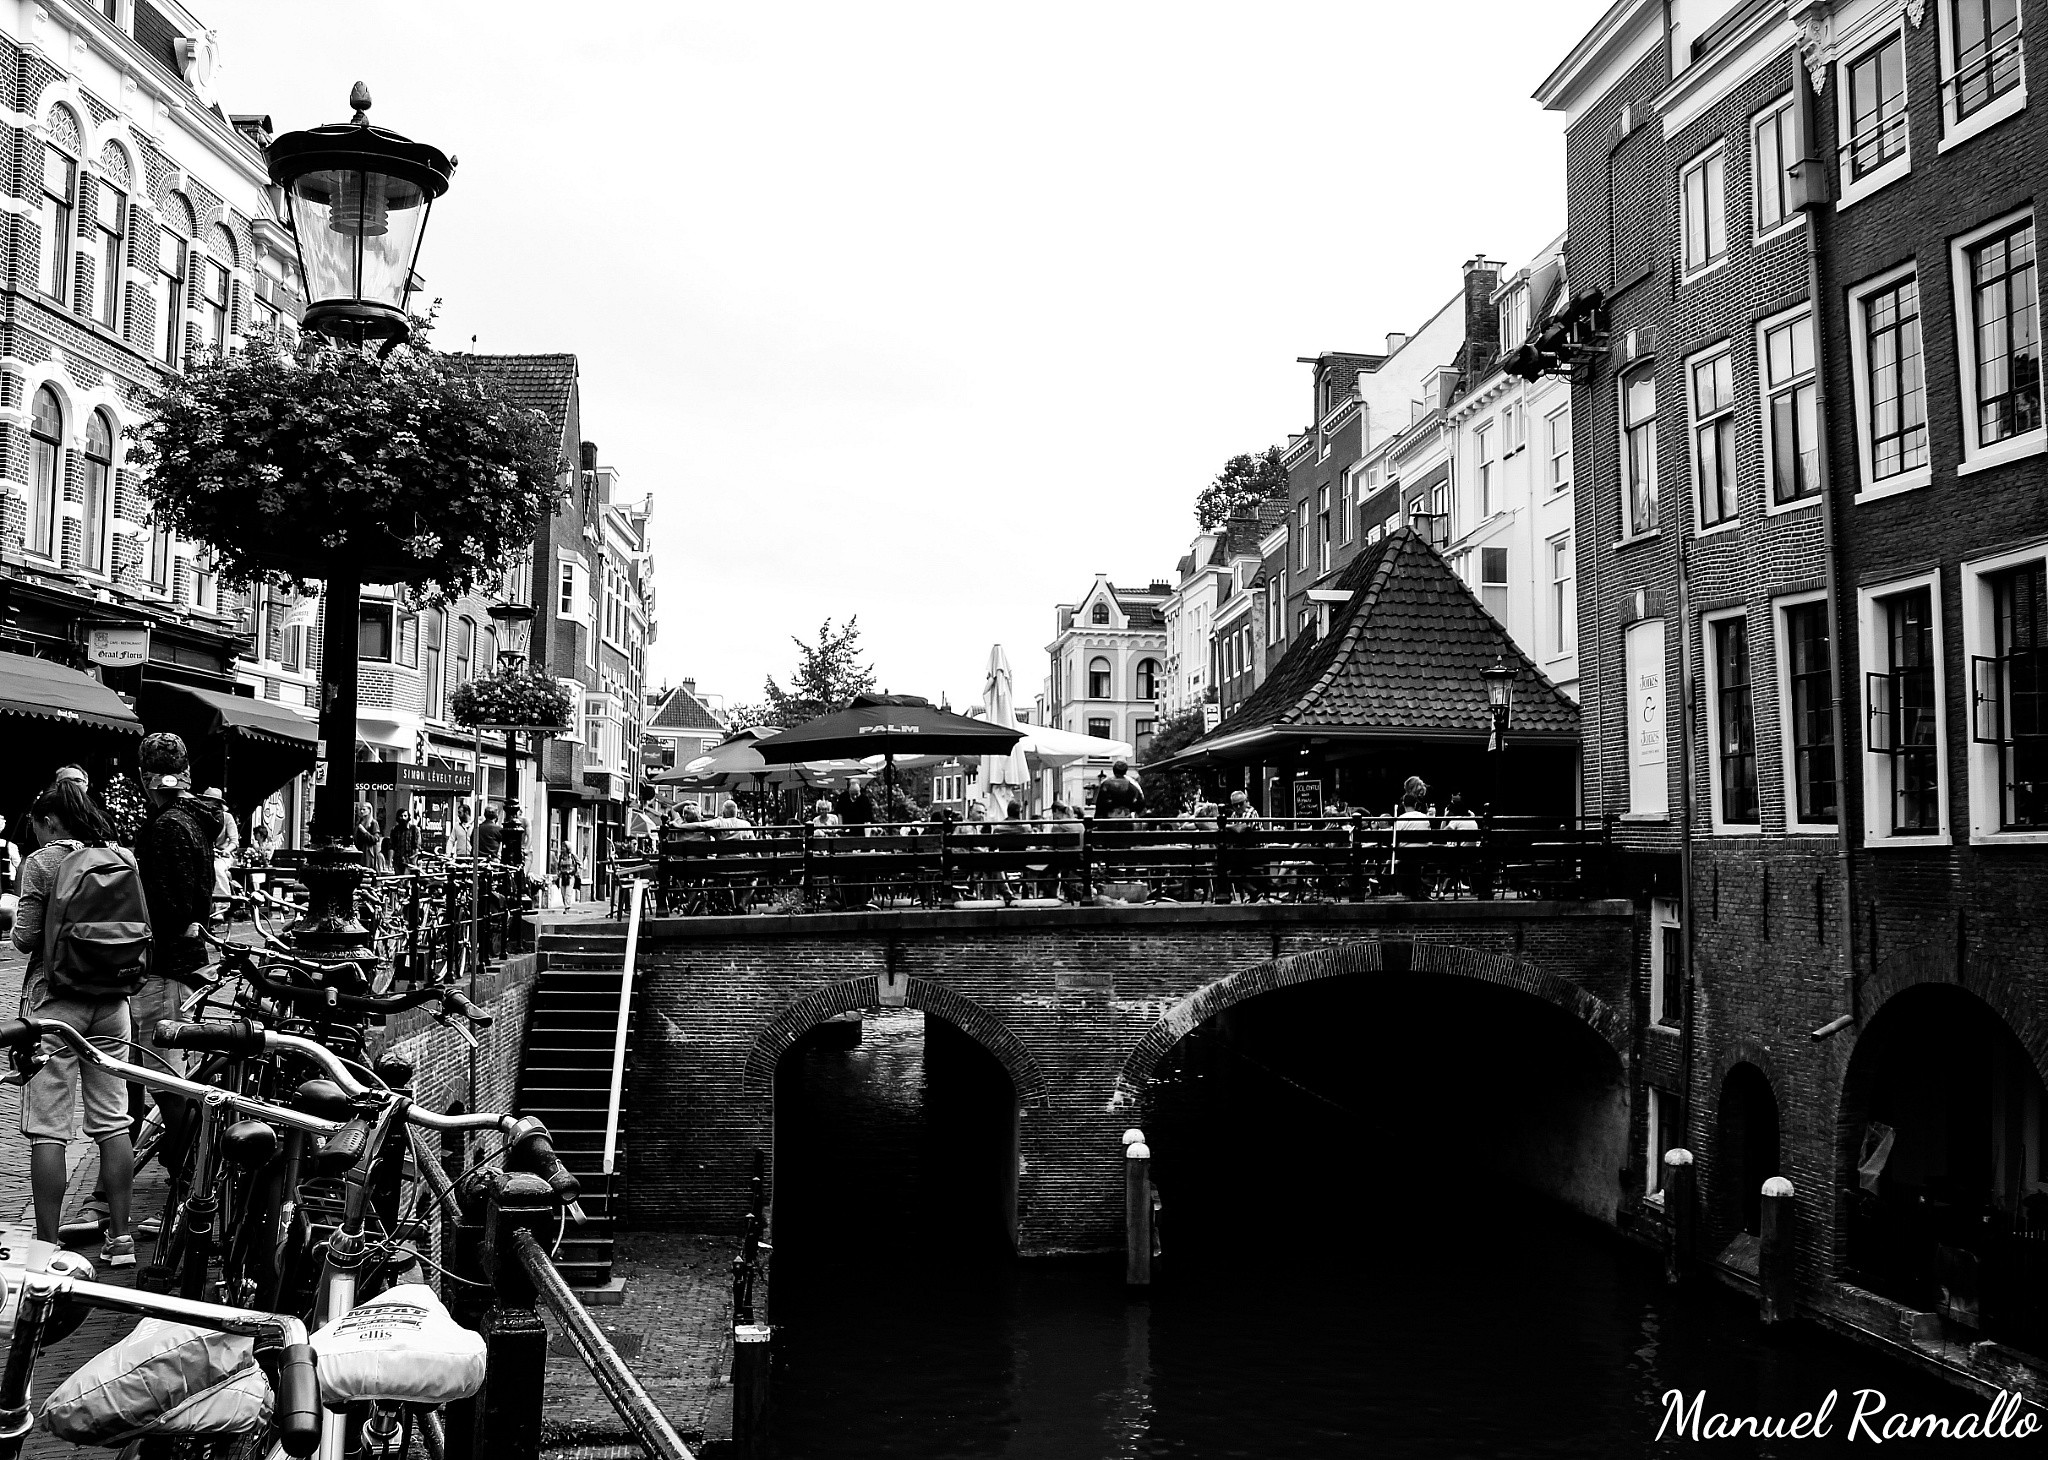 utrecht-canal-holanda-blanco-y-negro-black-and-white